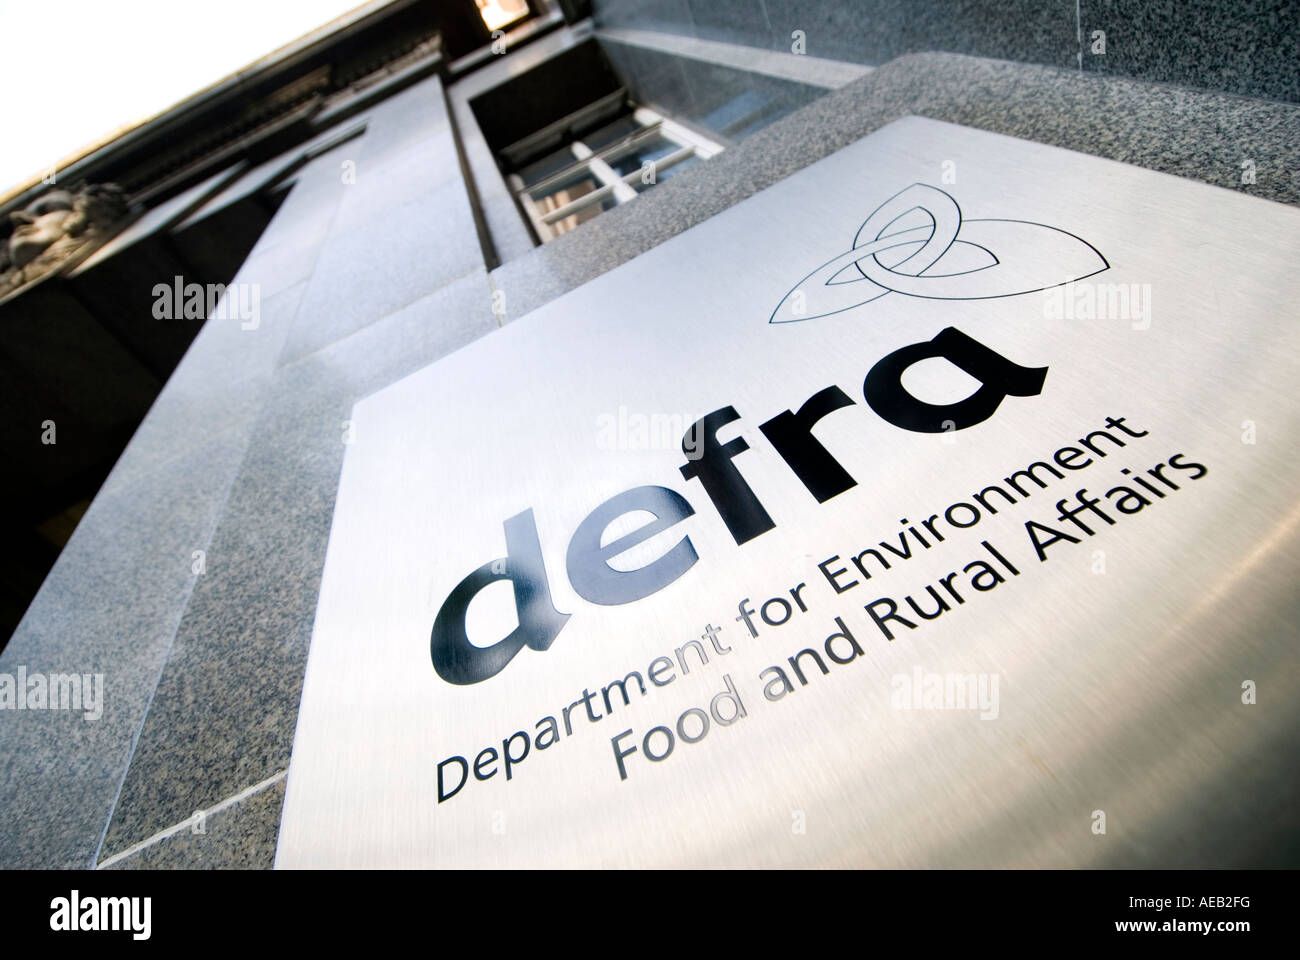 Sign at the headquarters for DEFRA Department for Environment Food and Rural Affairs London UK - Stock Image